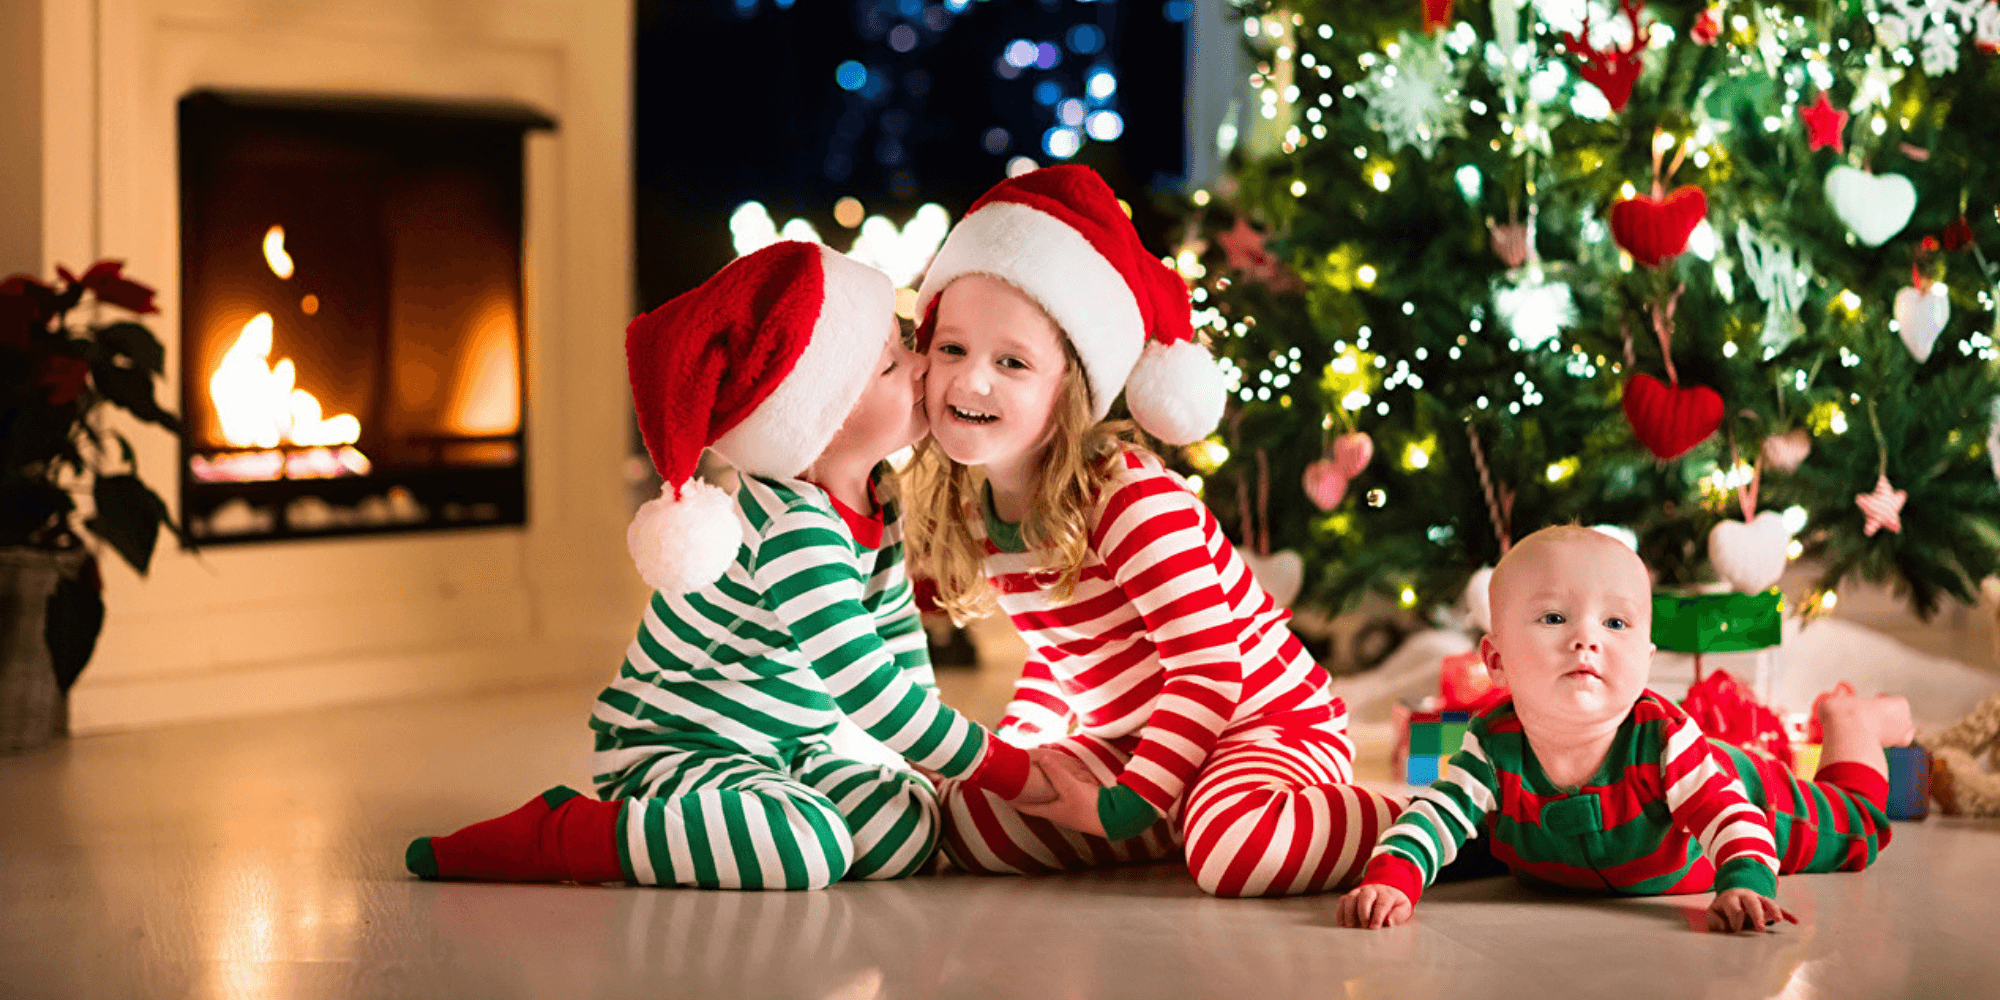 children sitting by the Christmas tree